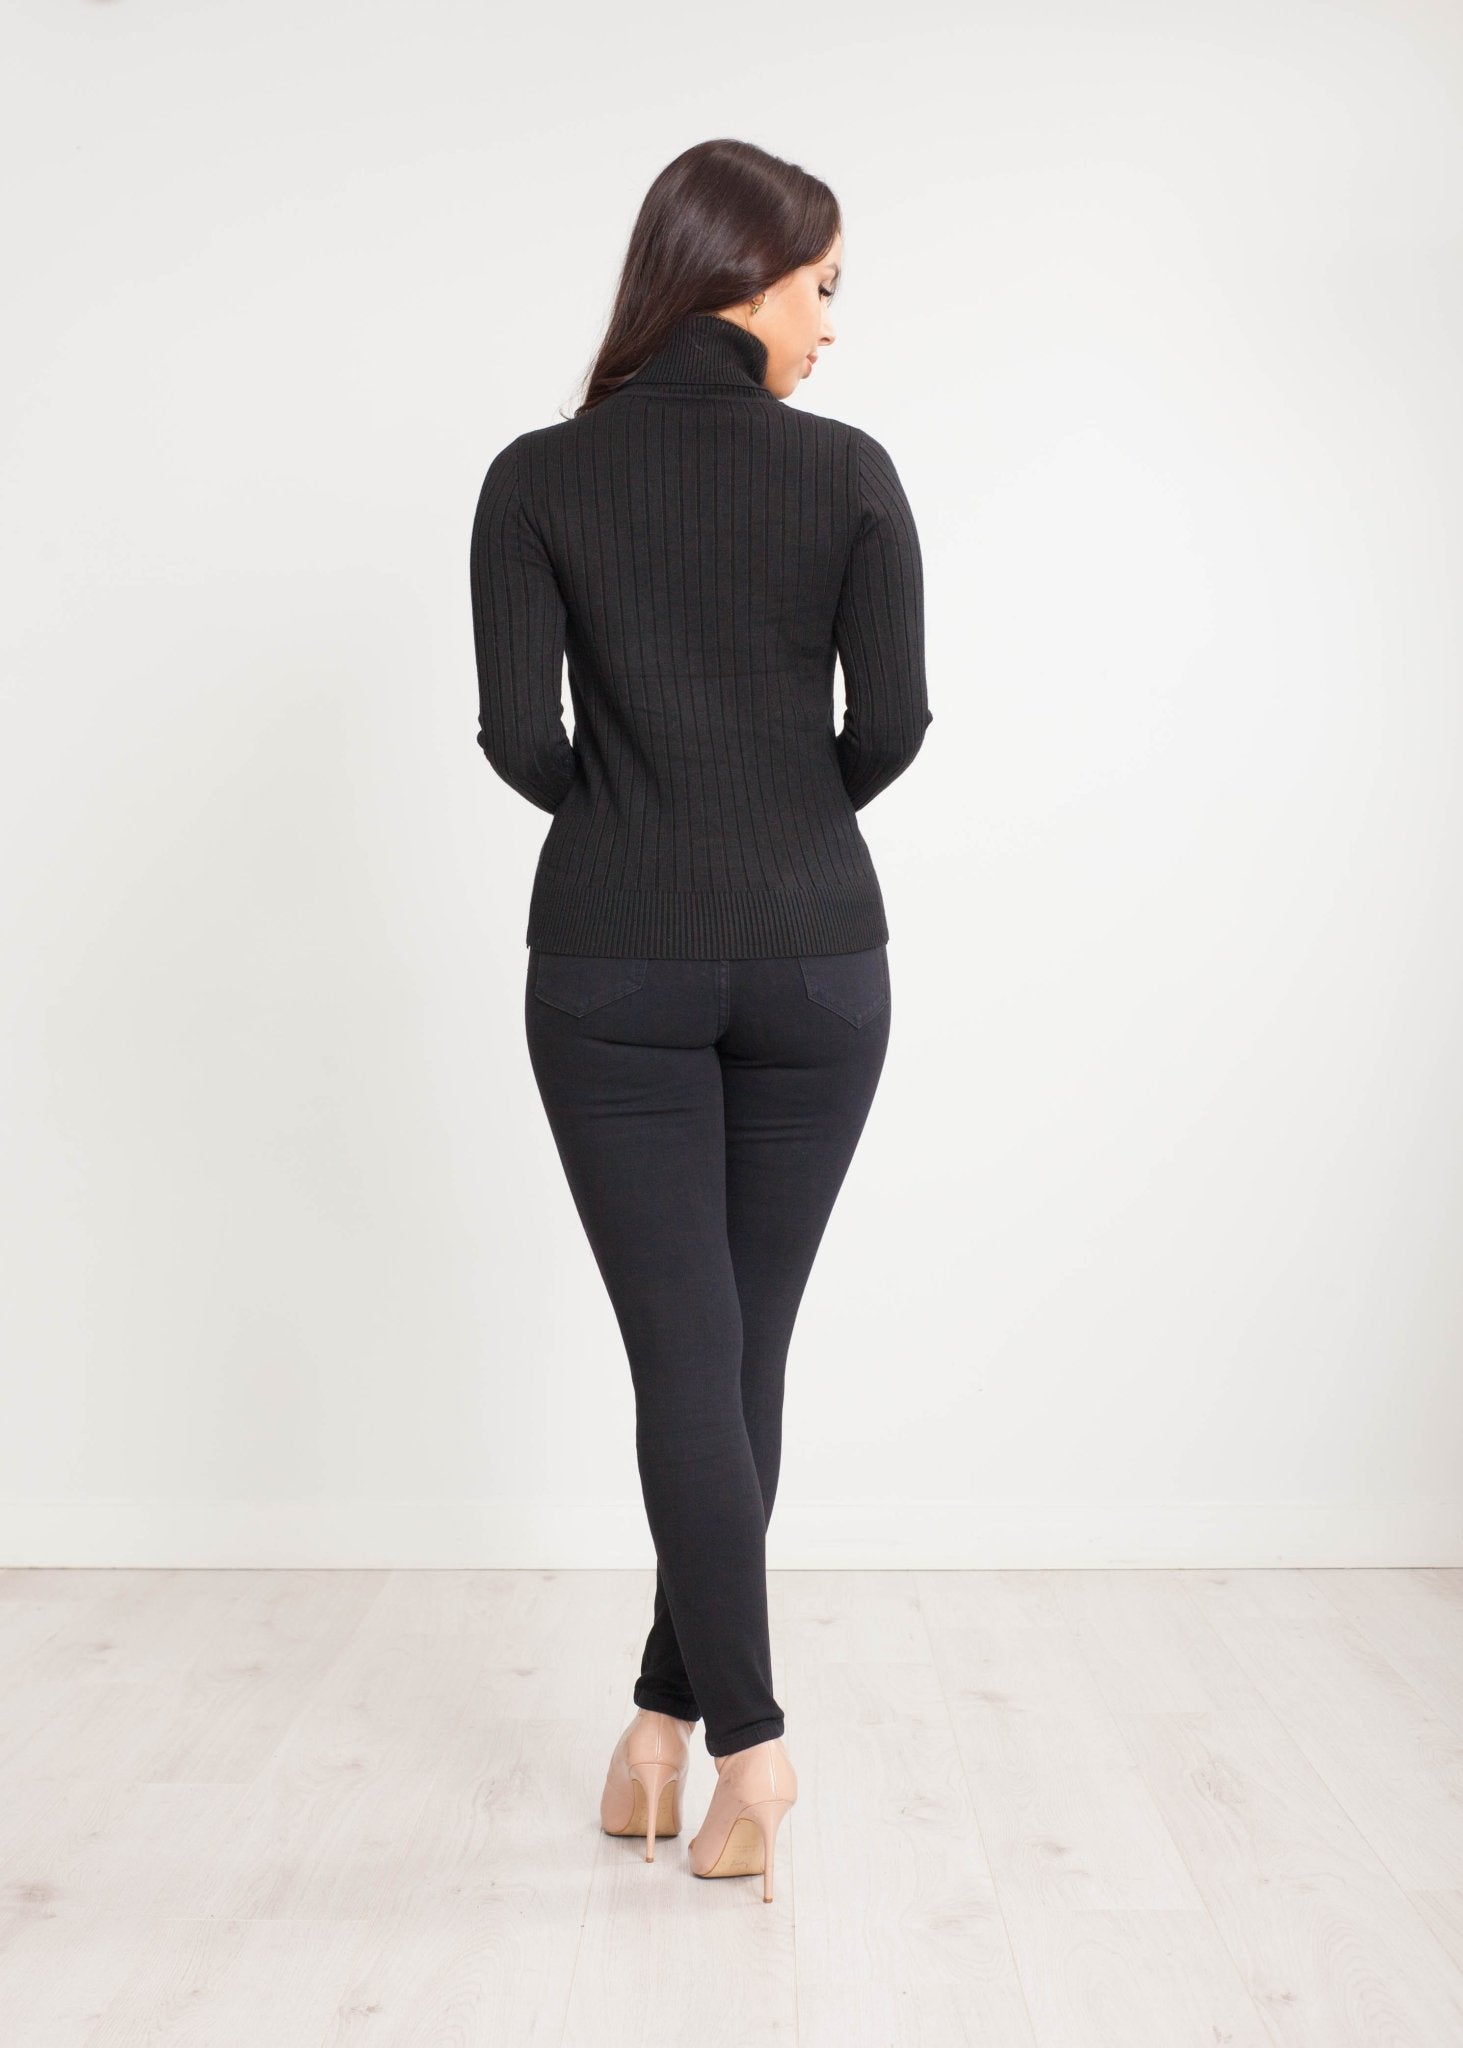 Priya Polo Neck with Buttons in Black - The Walk in Wardrobe